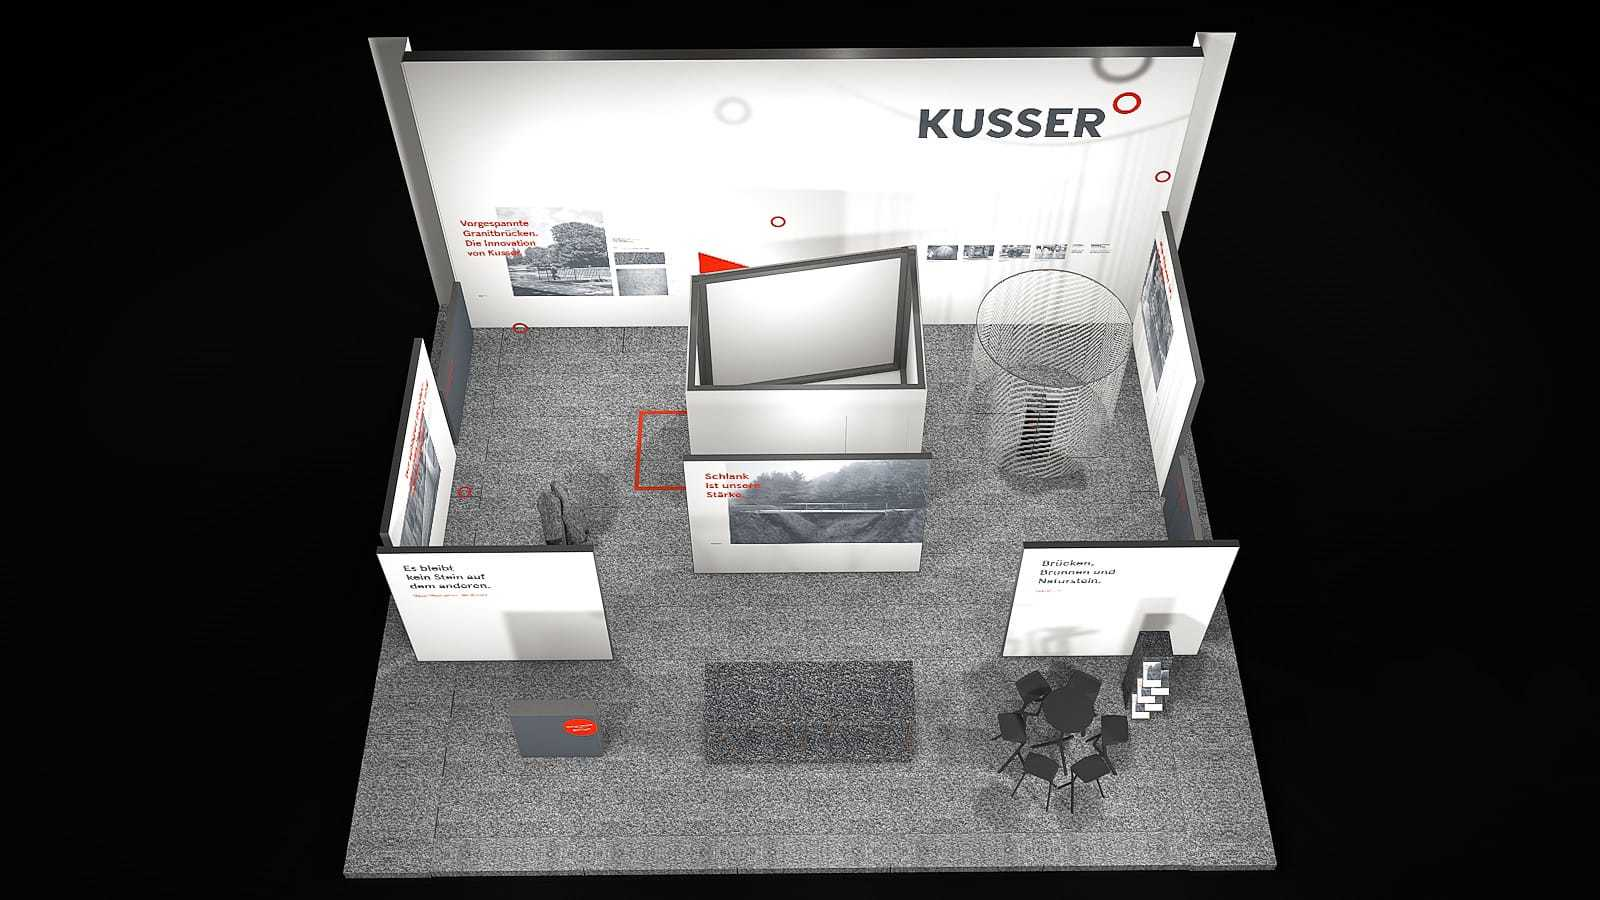 Kusser Messestand Konzeption